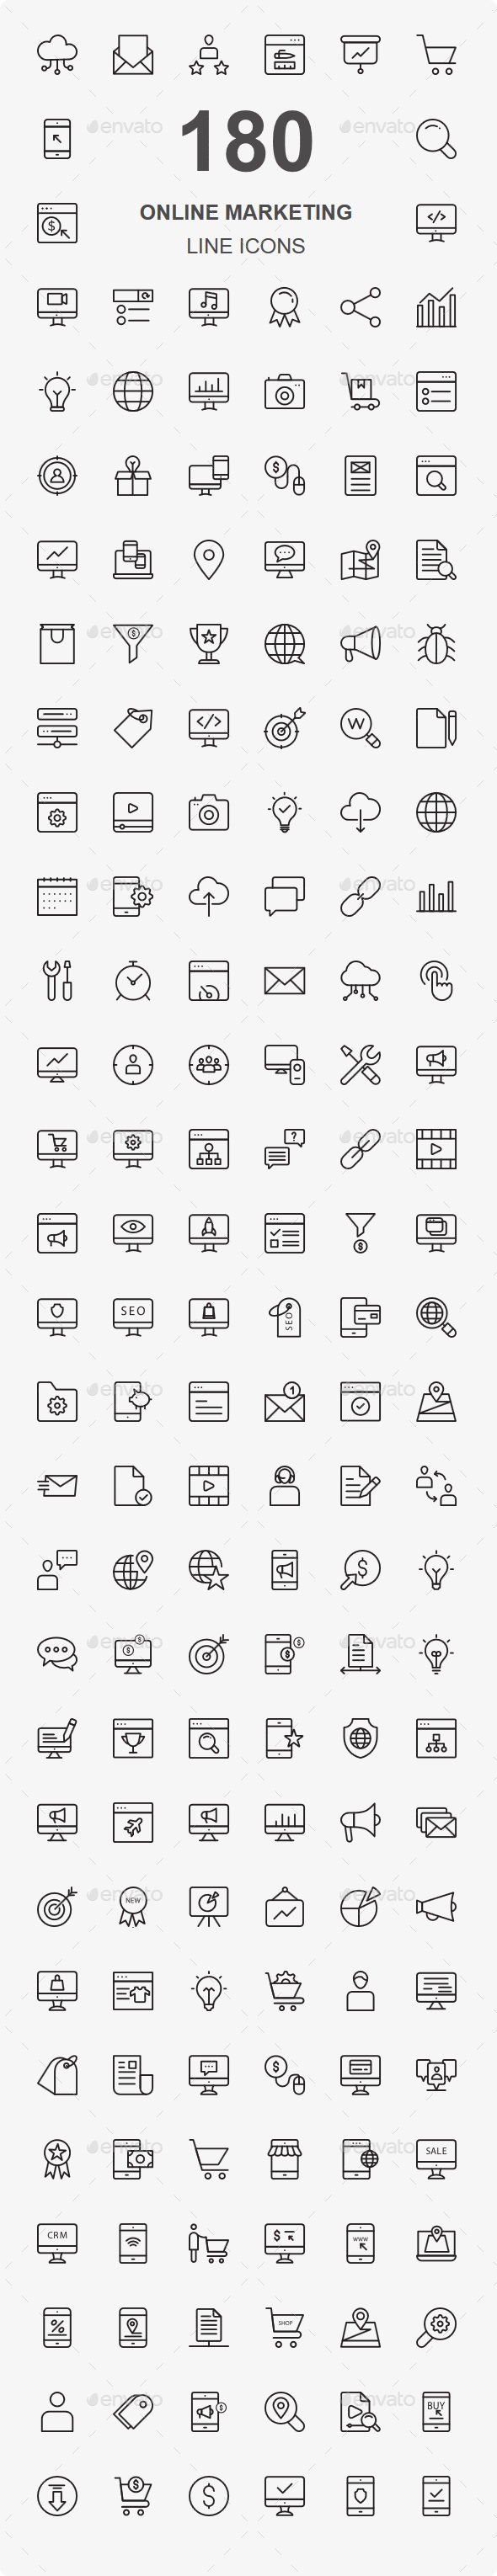 Online Marketing Line Icons - Business Icons